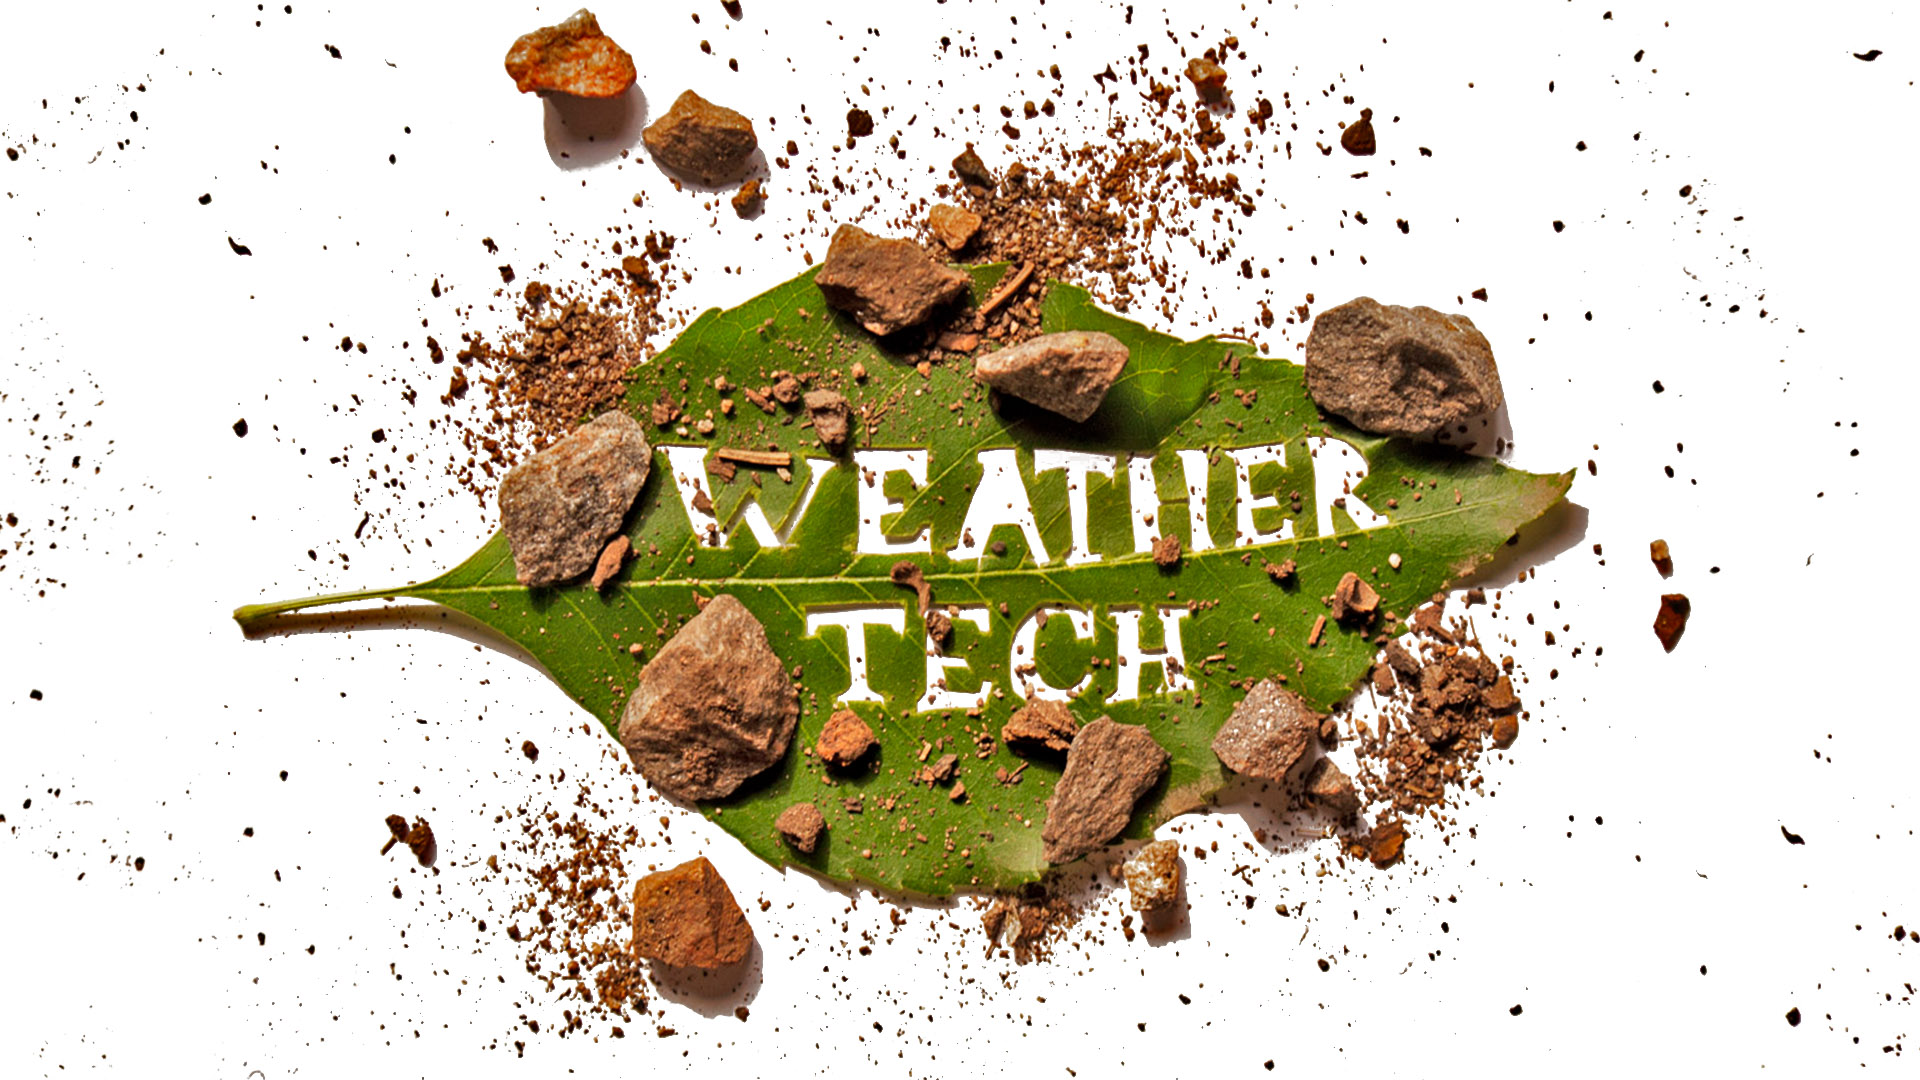 Weather_Tech